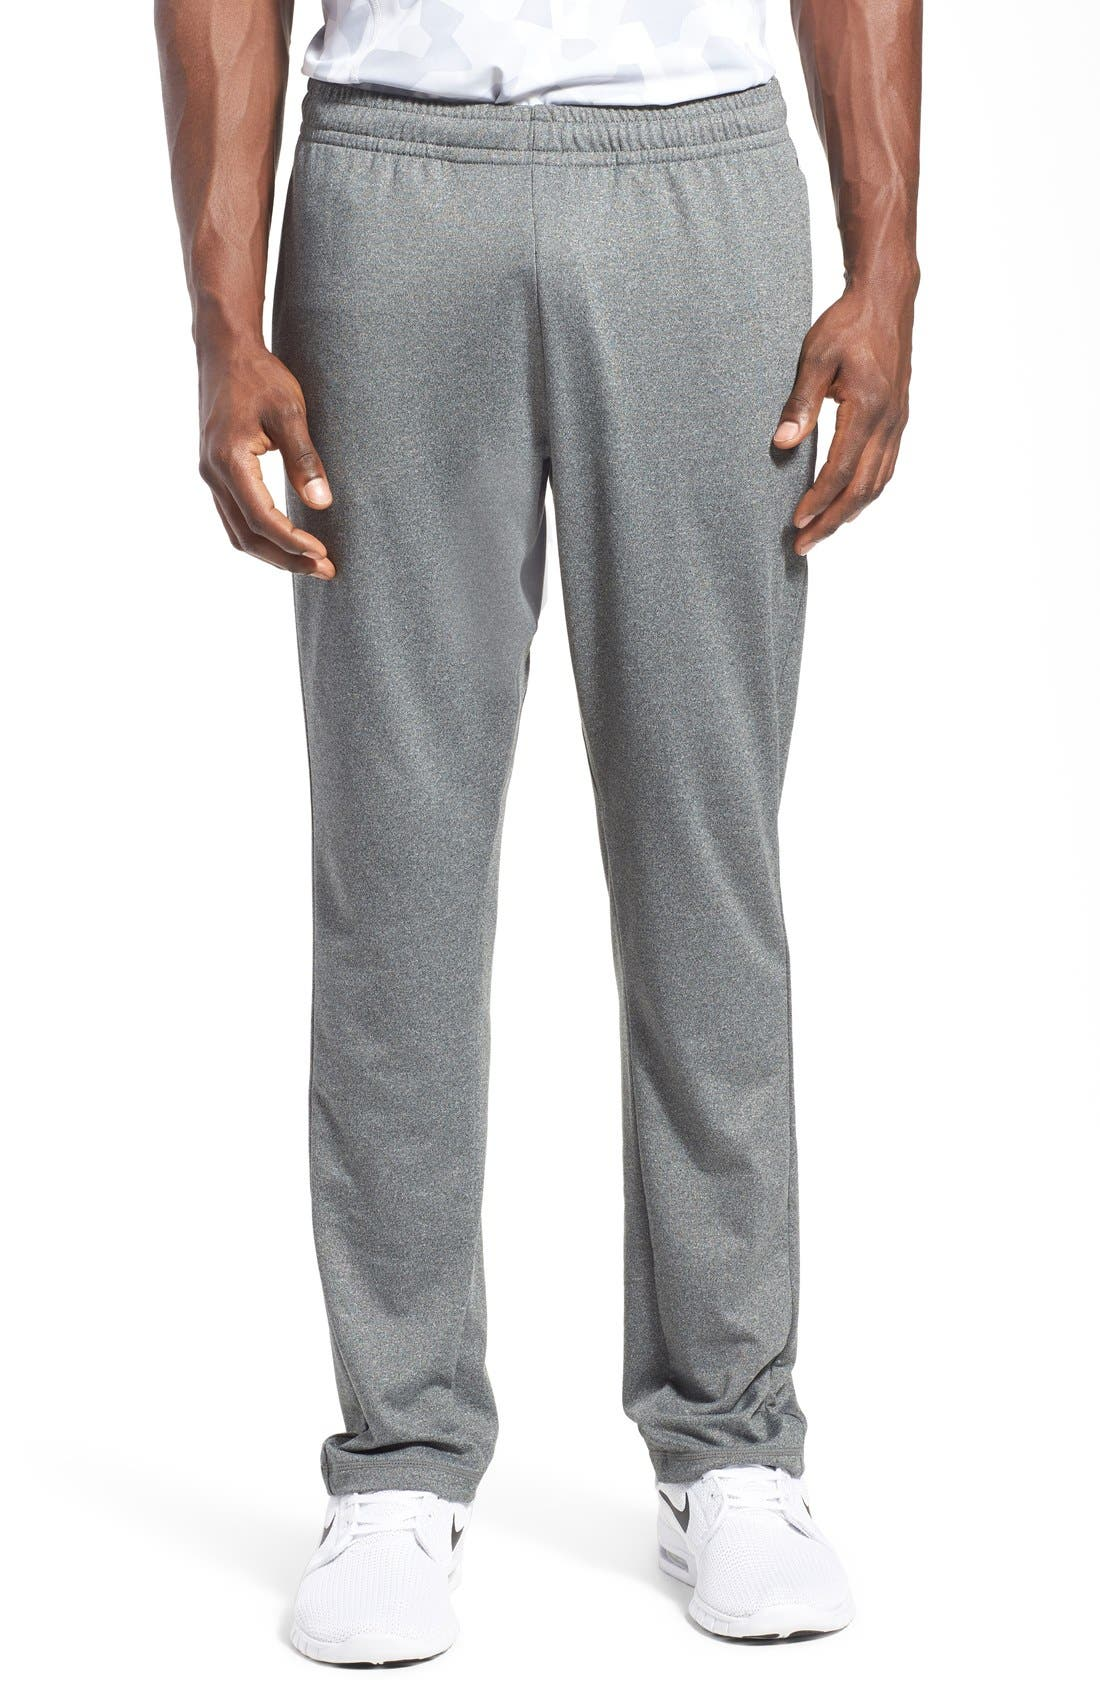 'Pyrite' Tapered Fit Knit Athletic Pants,                             Main thumbnail 1, color,                             GREY OBSIDIAN